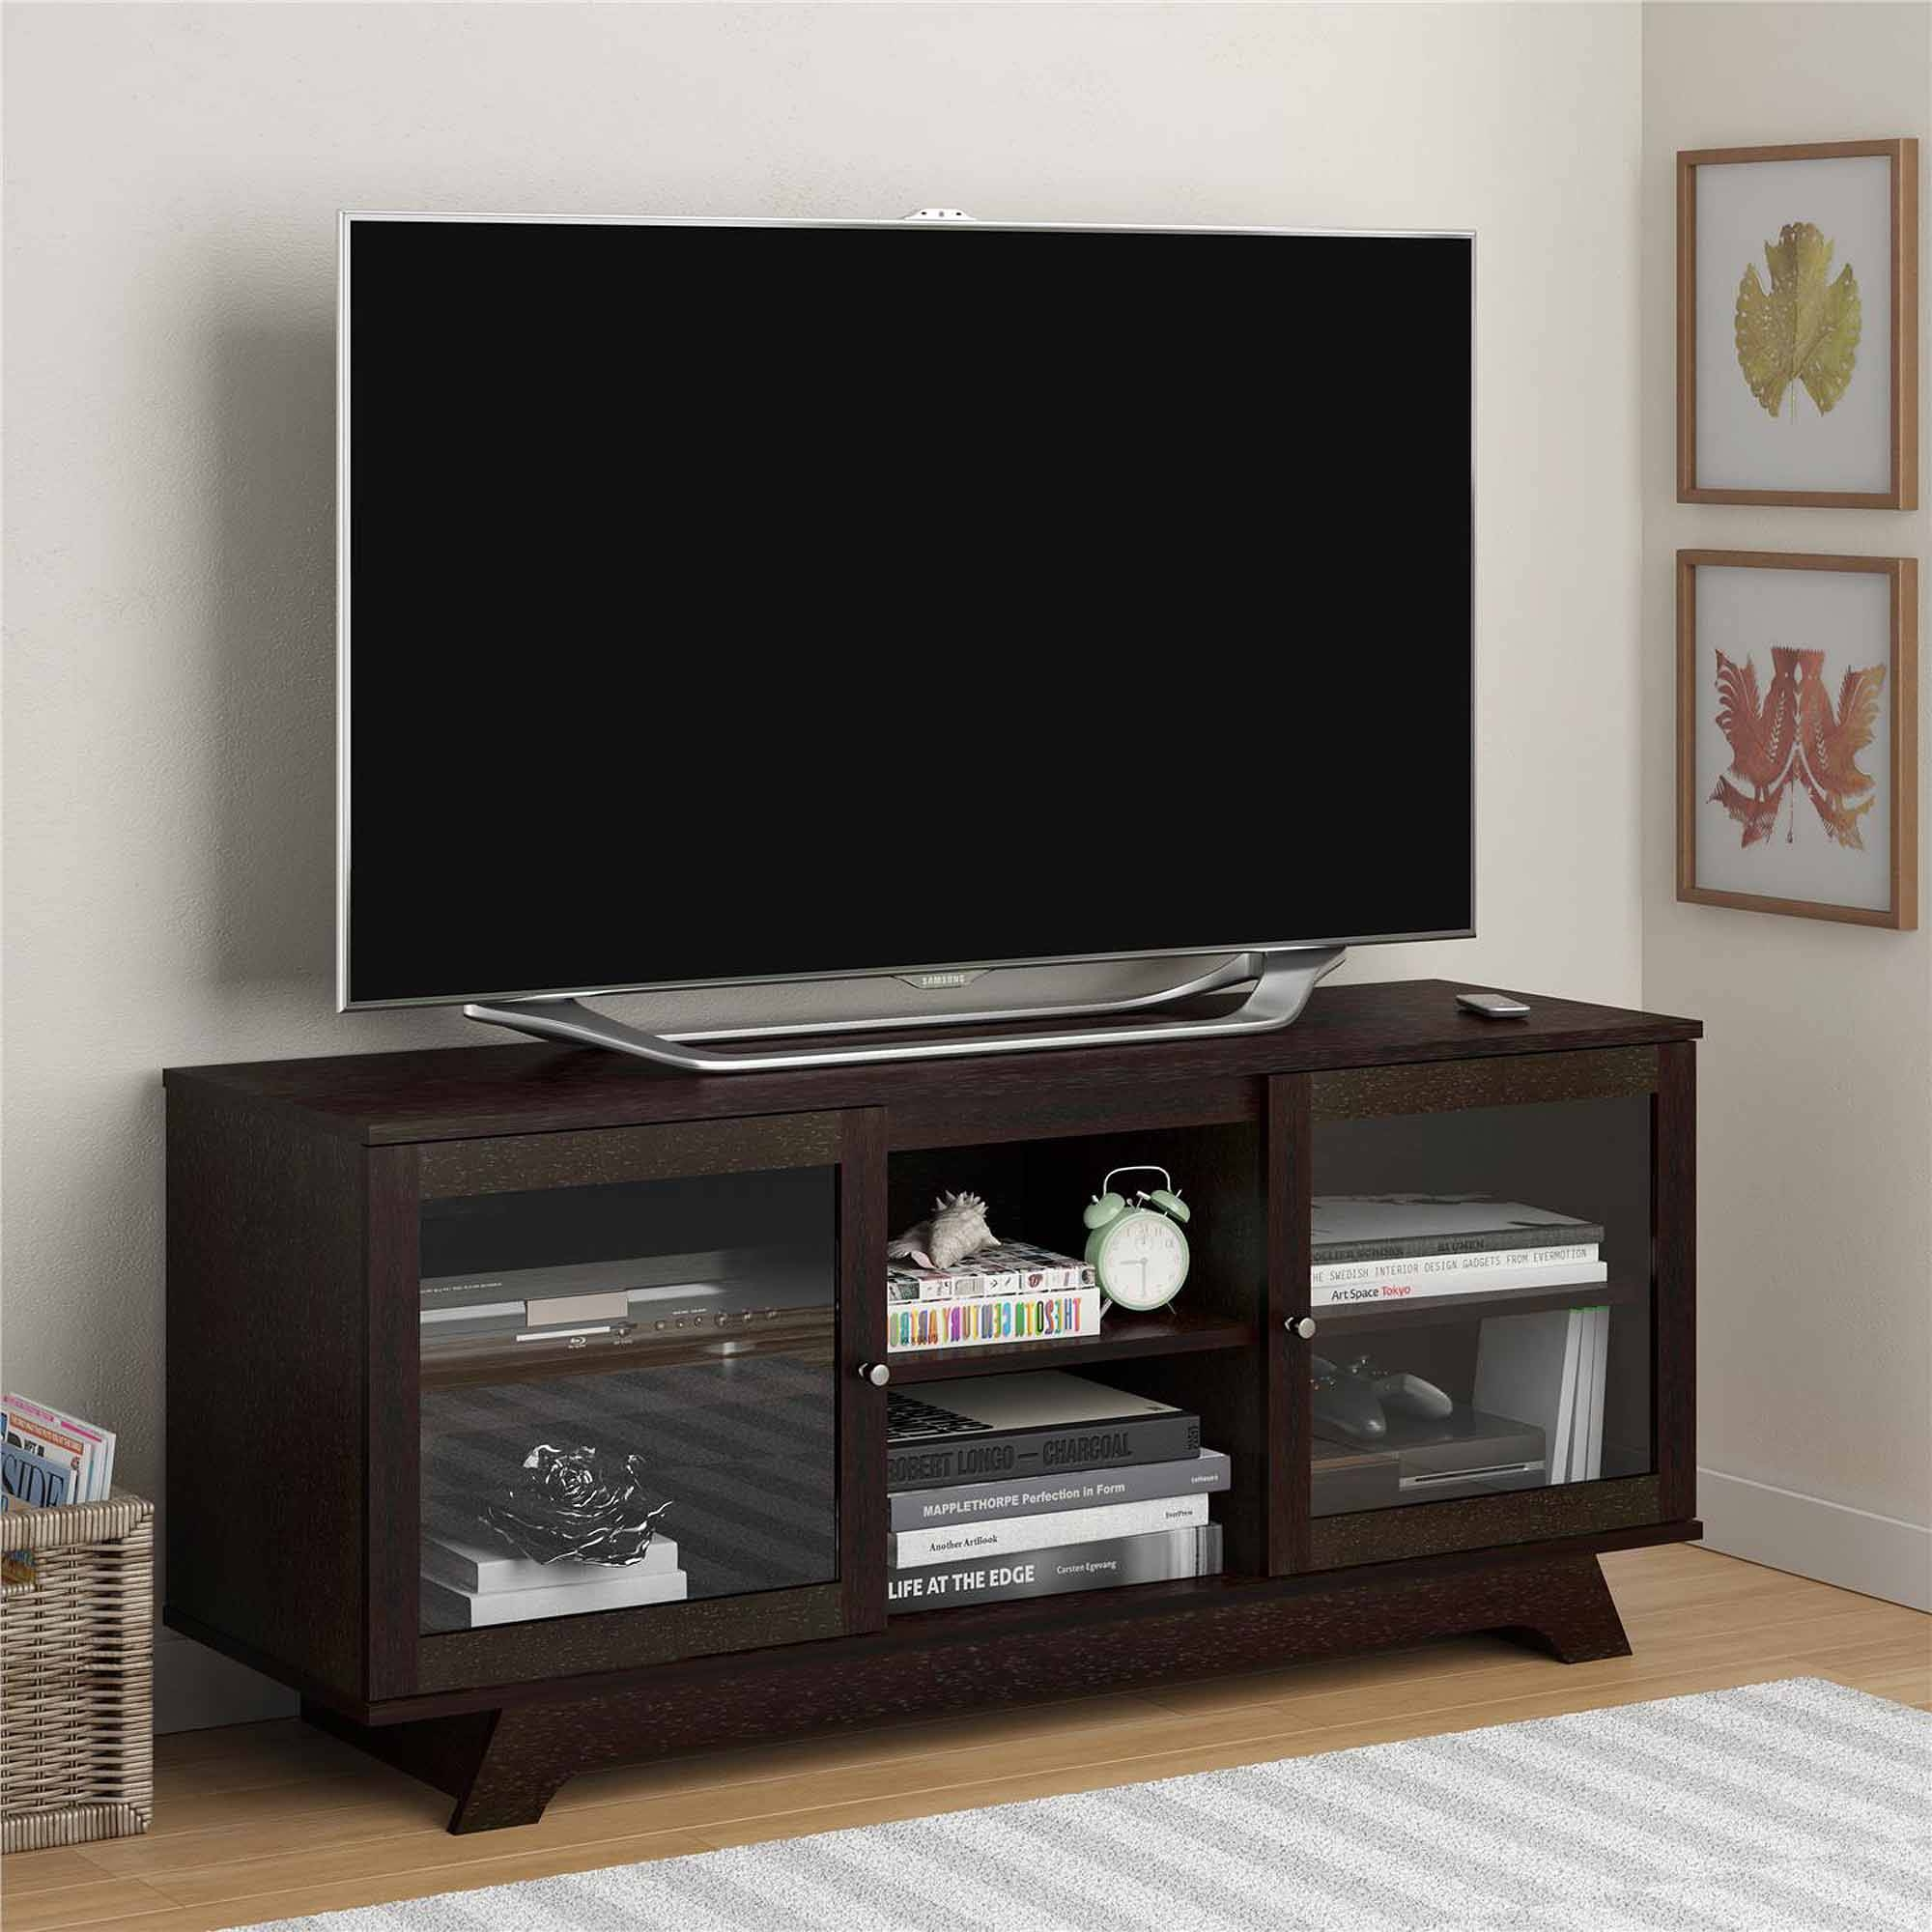 Tv Stands & Entertainment Centers - Walmart in Big Tv Stands Furniture (Image 13 of 15)